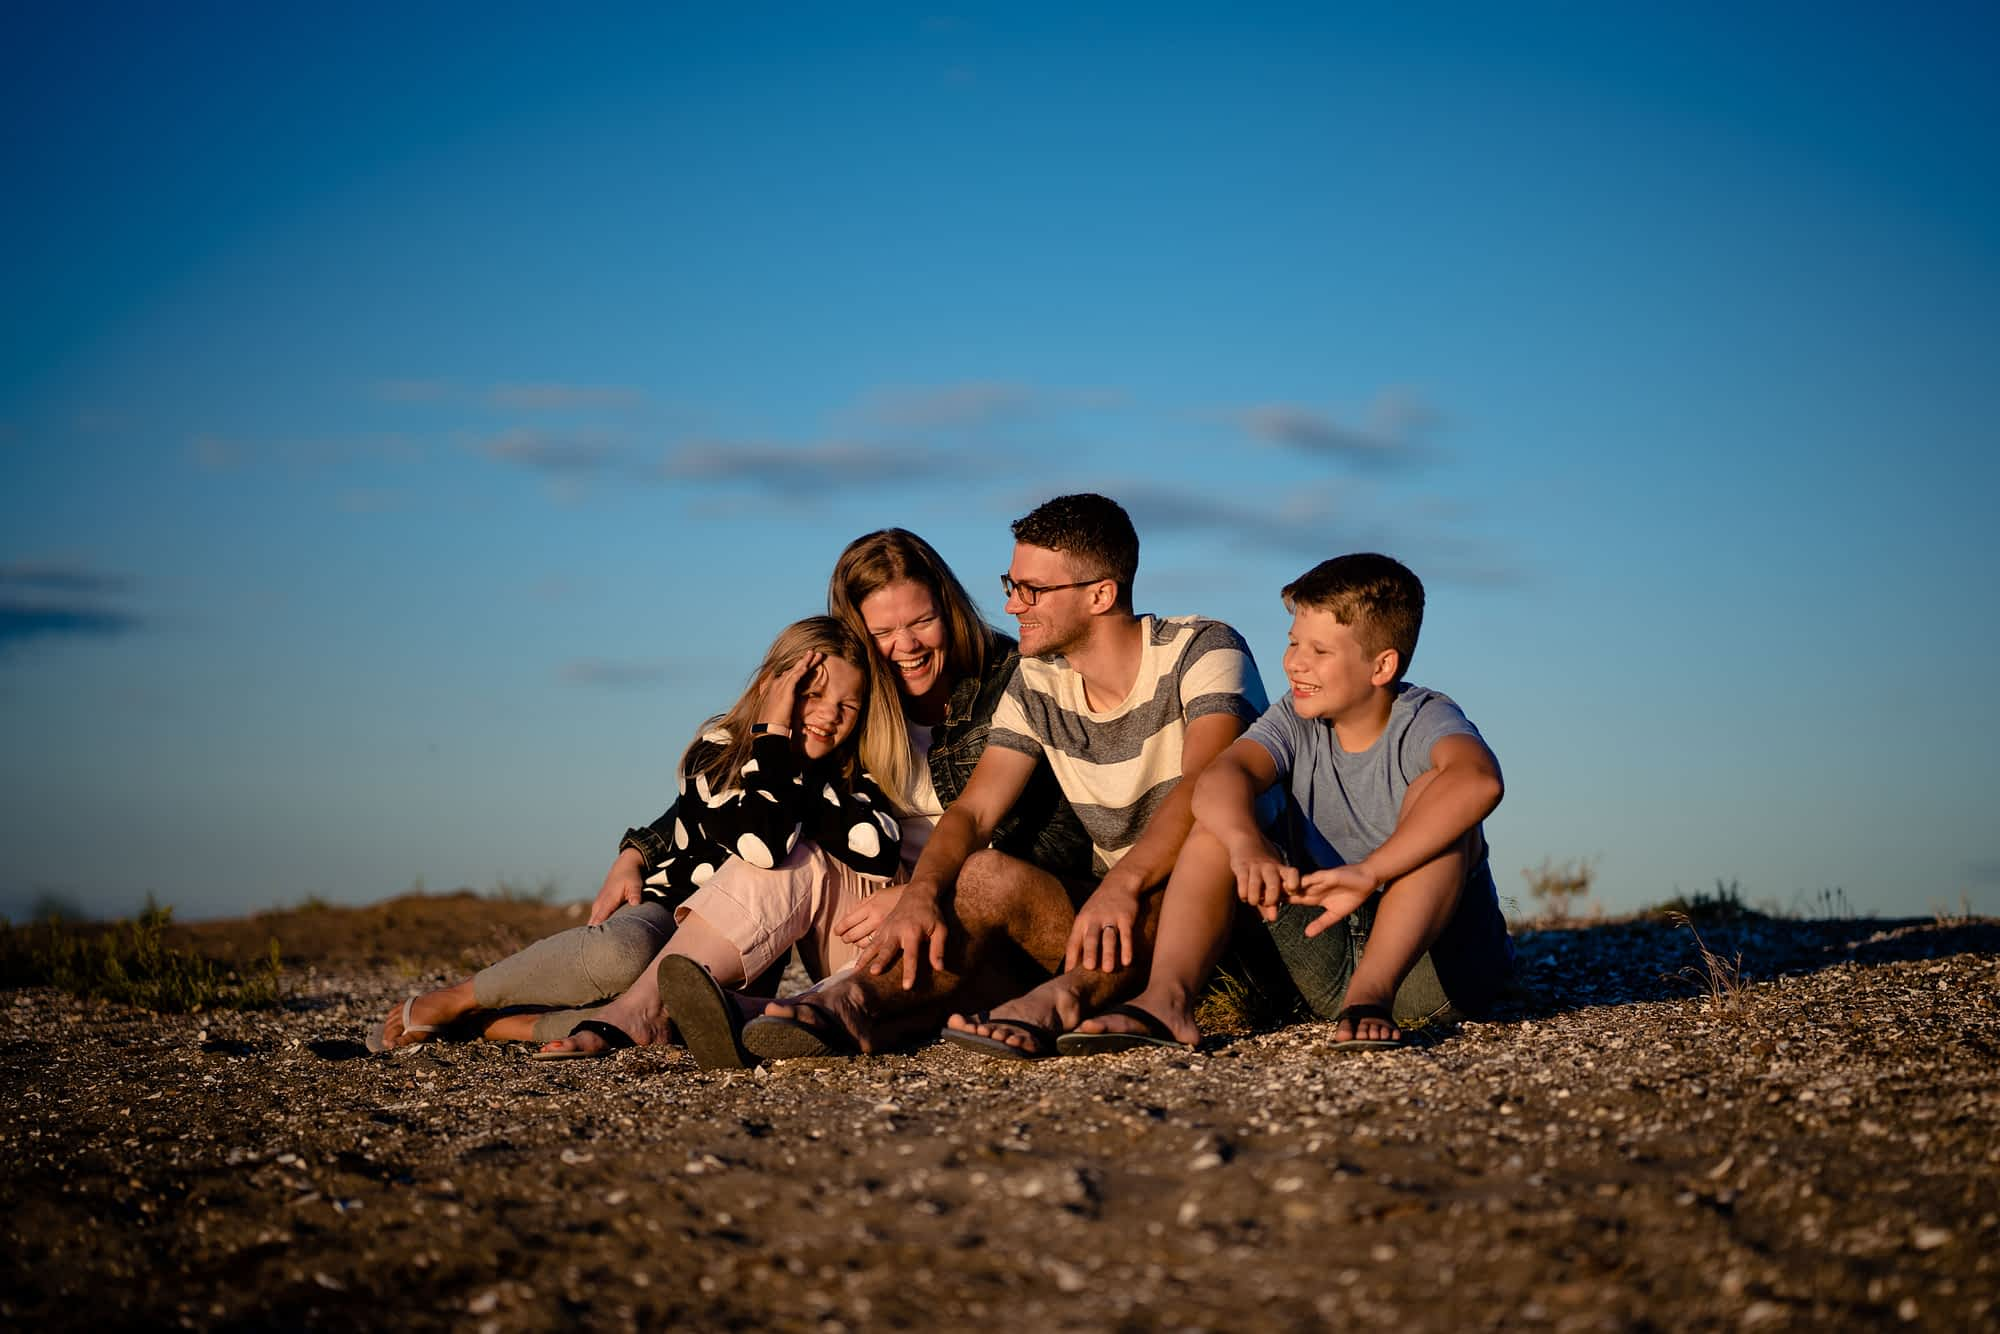 Family photoshoot on the beach by Paragon Expressions